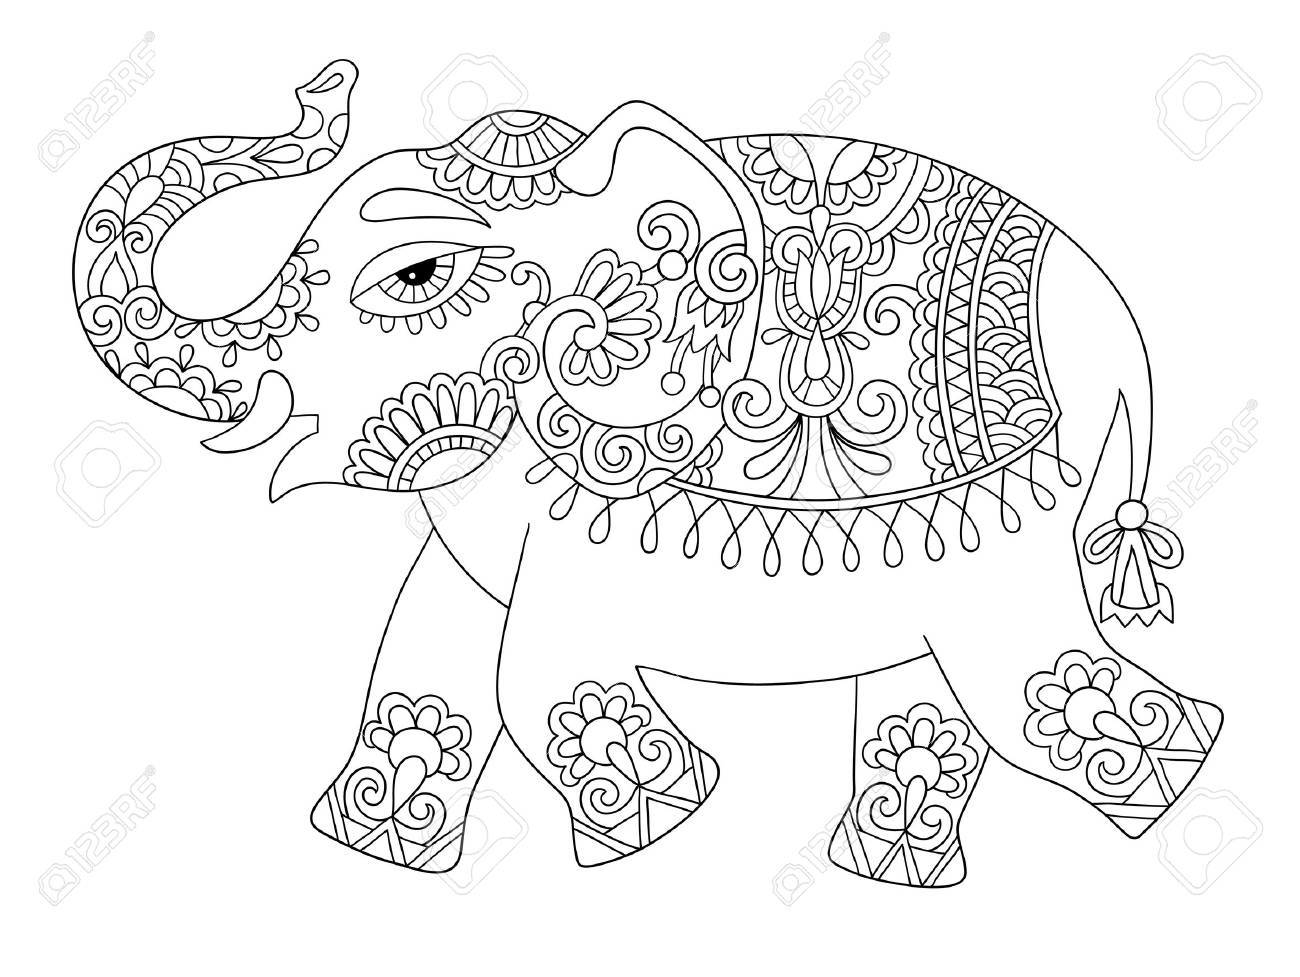 1300x977 Ethnic Indian Elephant Line Original Drawing, Adults Coloring